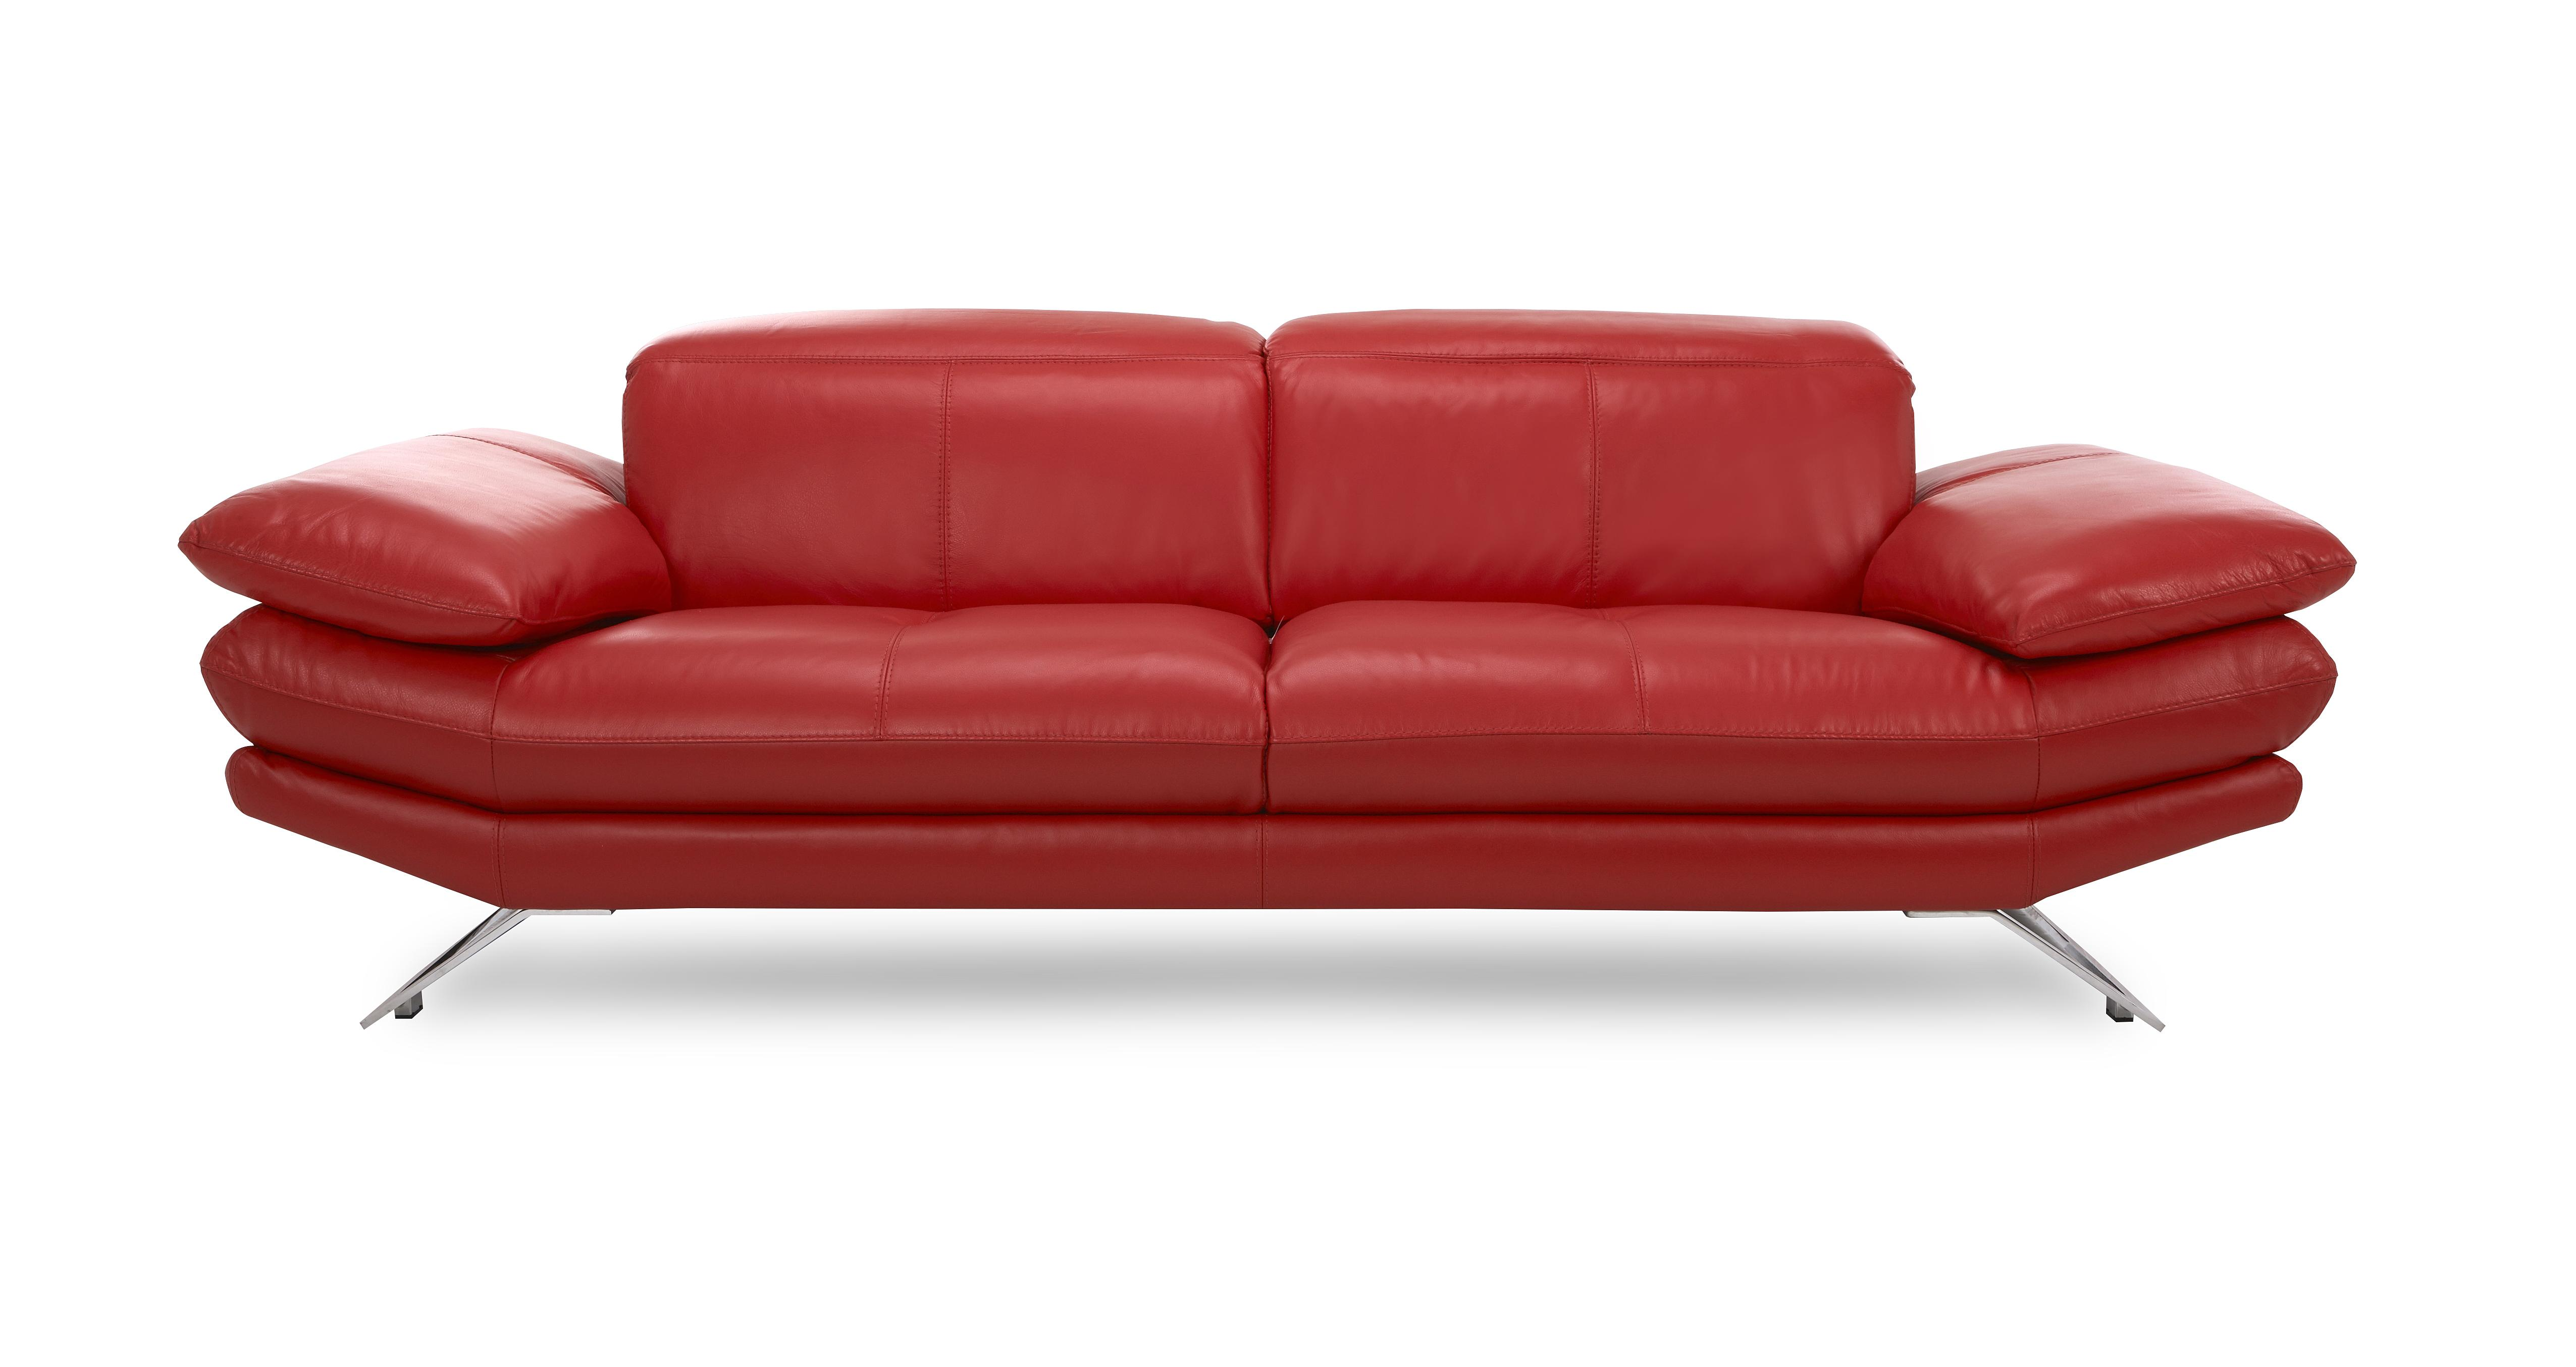 Dfs red sofa Dfs 4 seater leather sofa